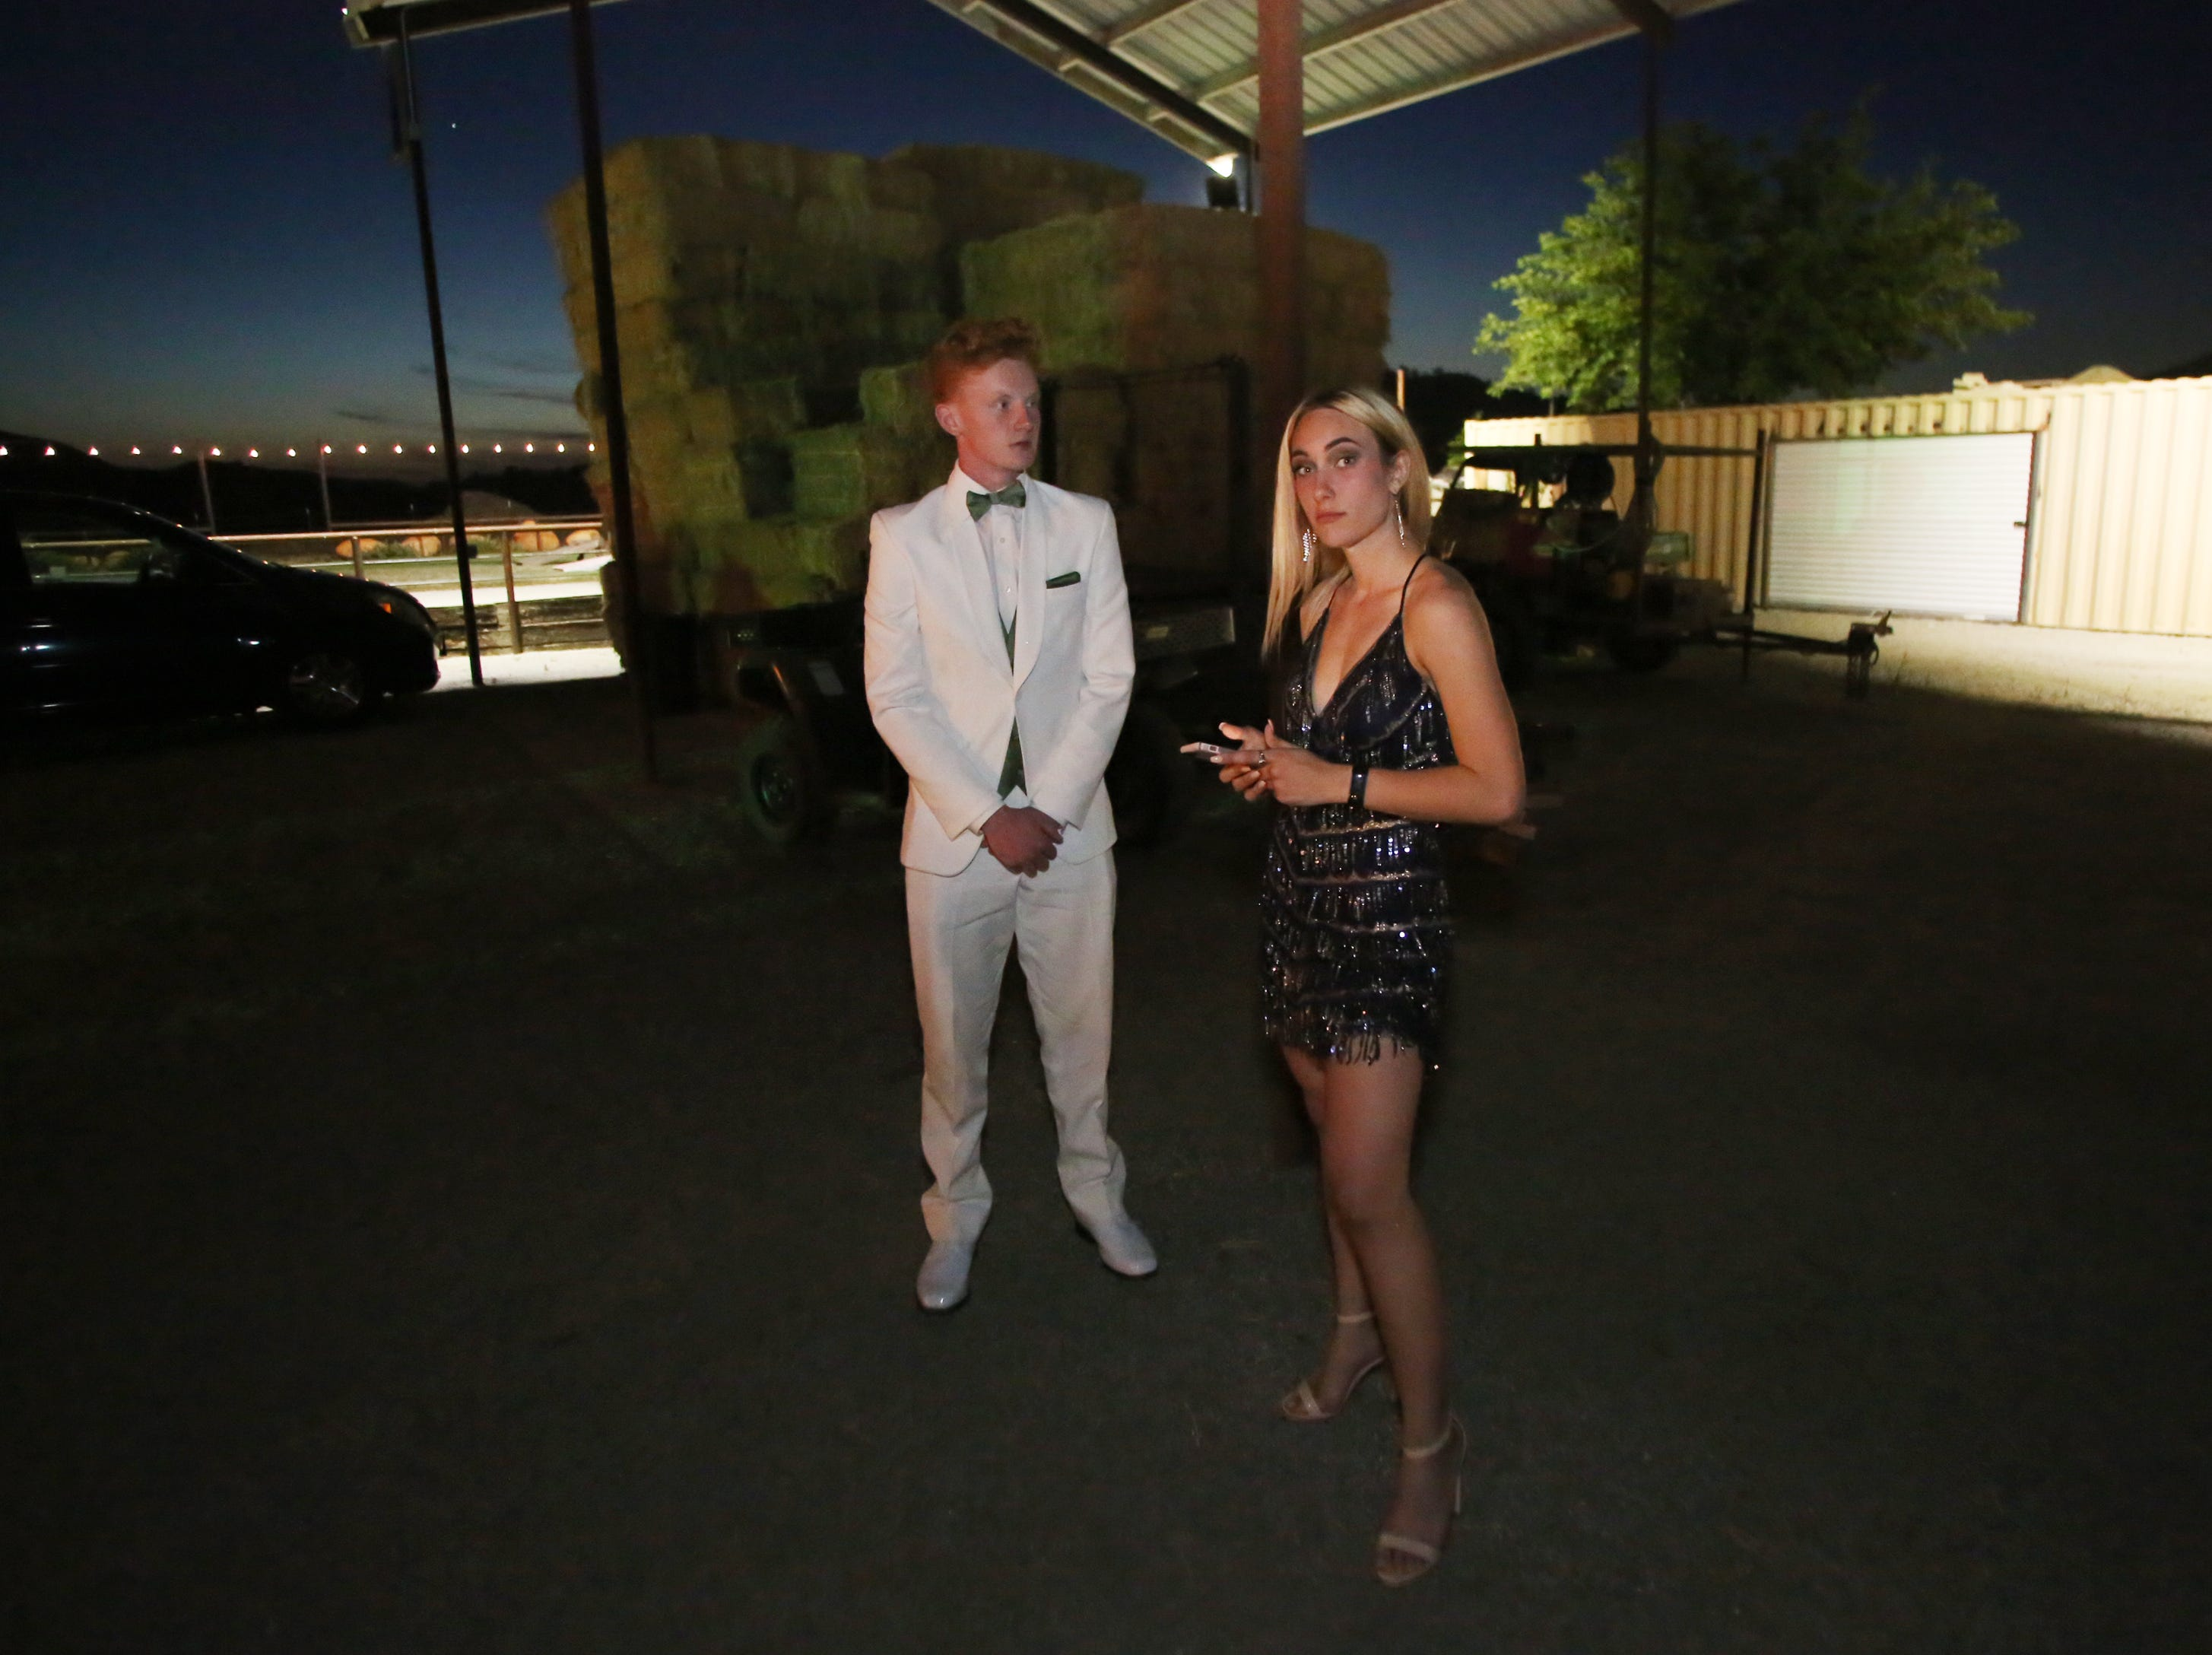 Bradley Fakes and Bradi Starnes wait for friends to arrive shown at the Exeter Union High School prom Saturday, May 4, 2019 in Woodlake, Calif.